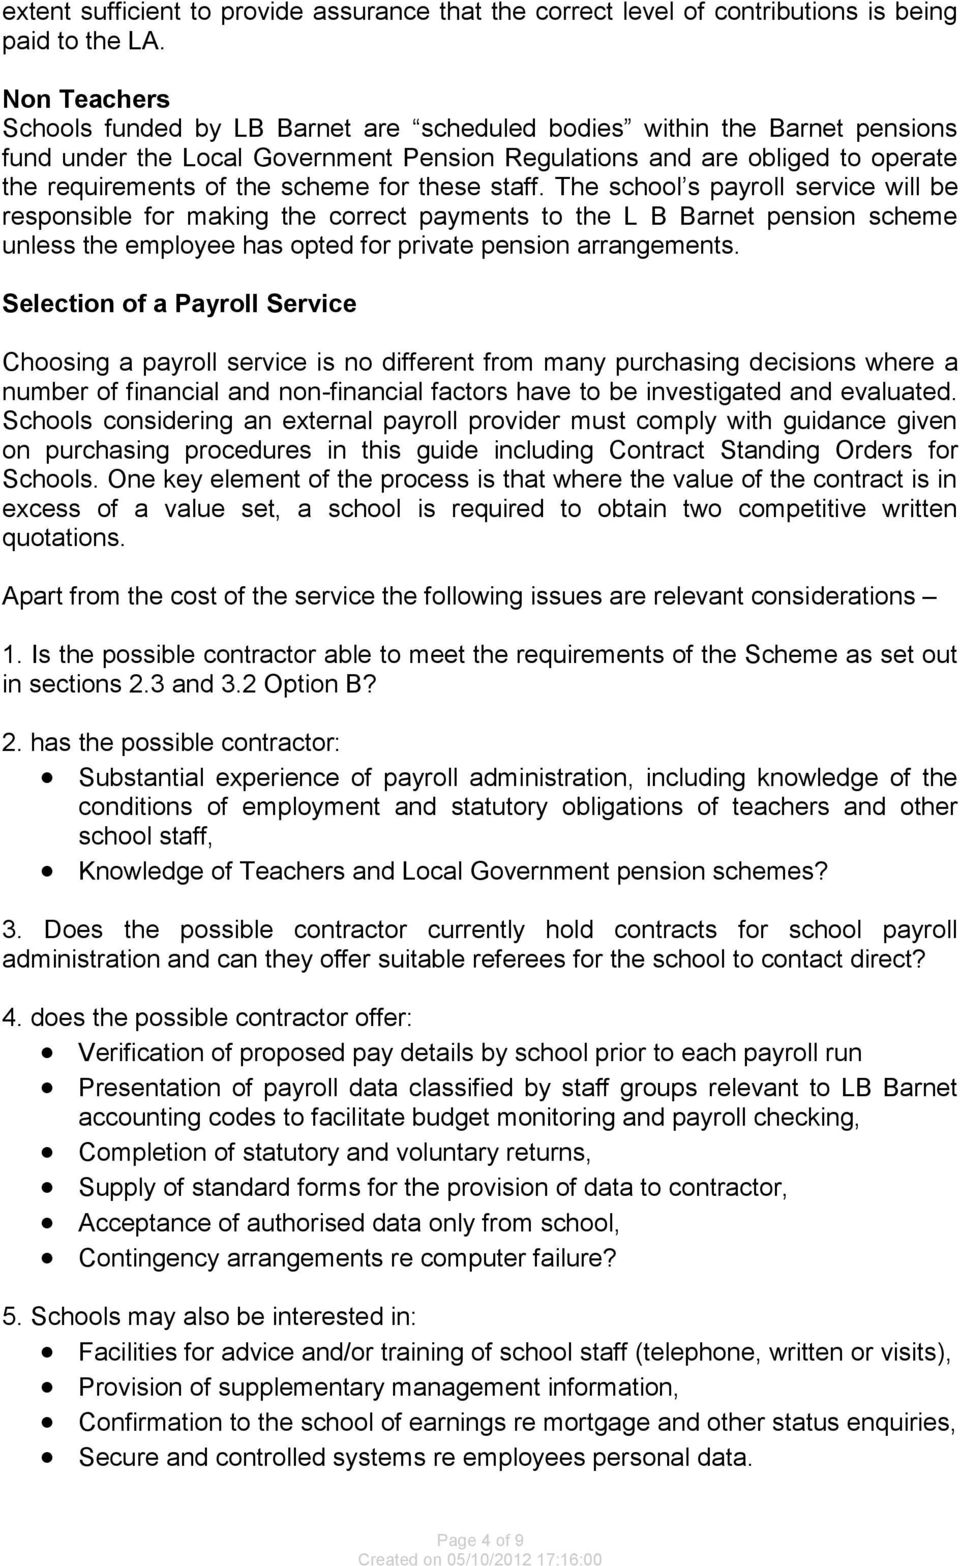 for these staff. The school s payroll service will be responsible for making the correct payments to the L B Barnet pension scheme unless the employee has opted for private pension arrangements.